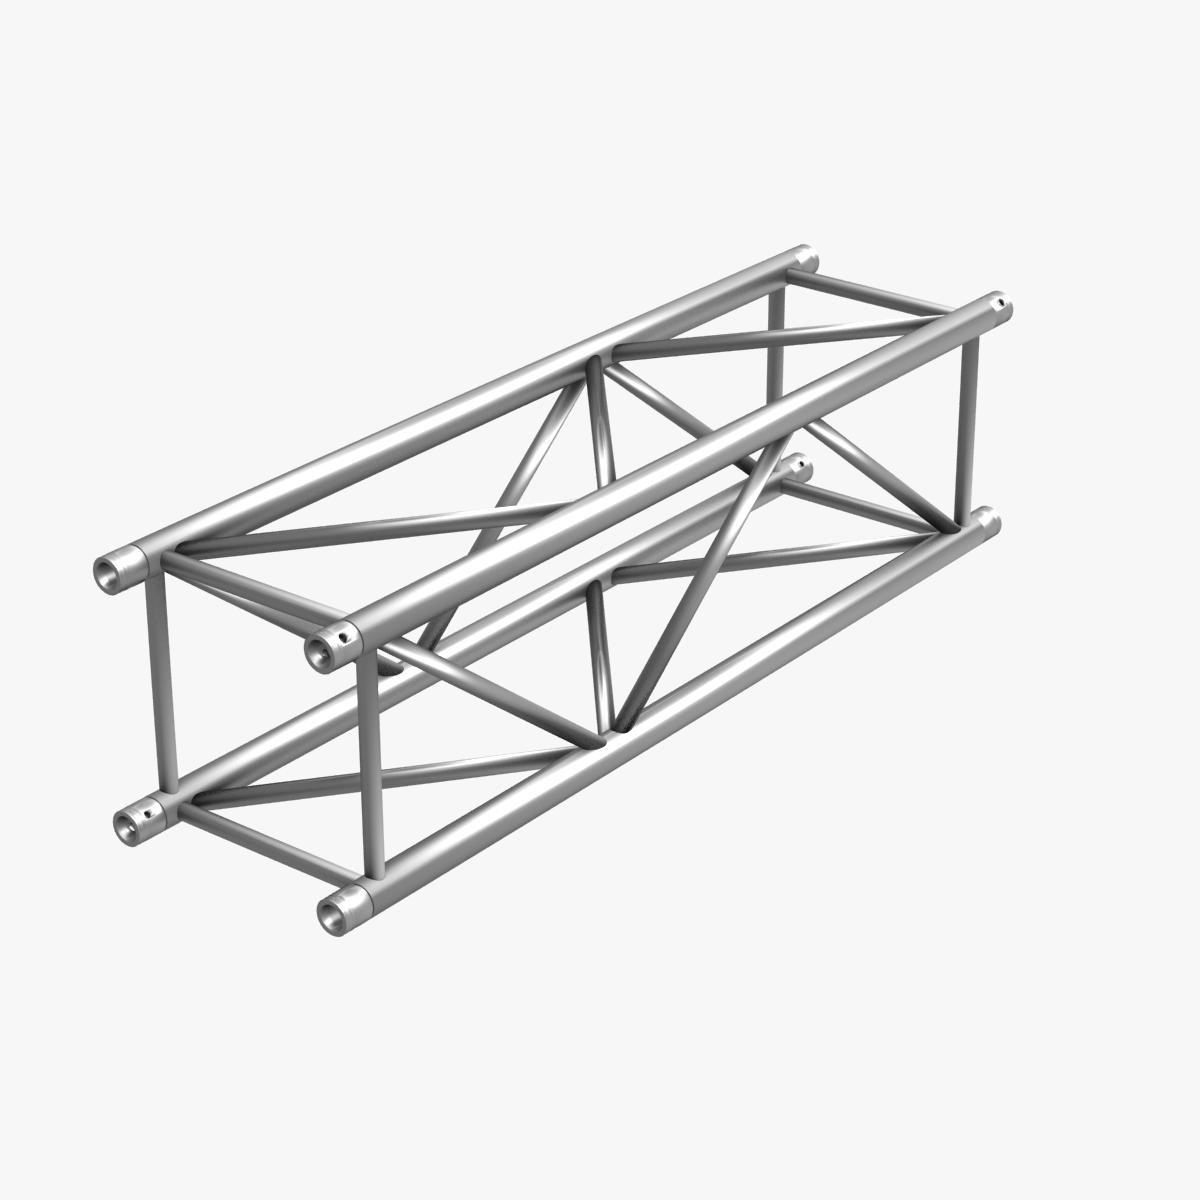 big square truss (collection 10 modular pieces) 3d model 3ds dxf fbx c4d dae  268548